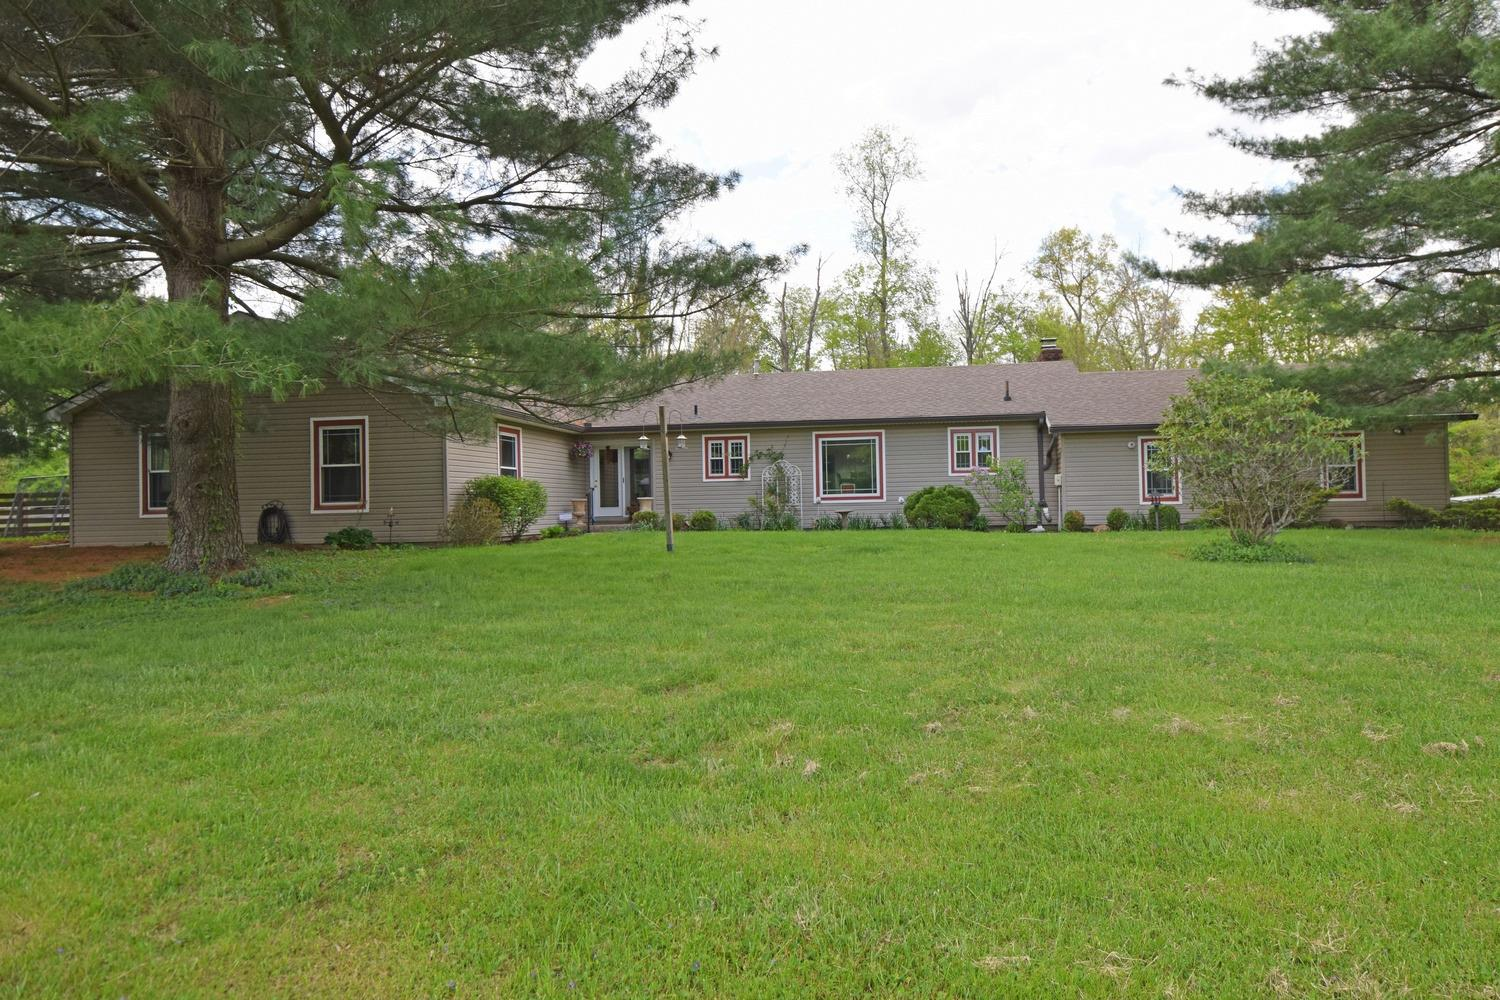 Photo 1 for 1678 Apgar Rd Stonelick Twp., OH 45150